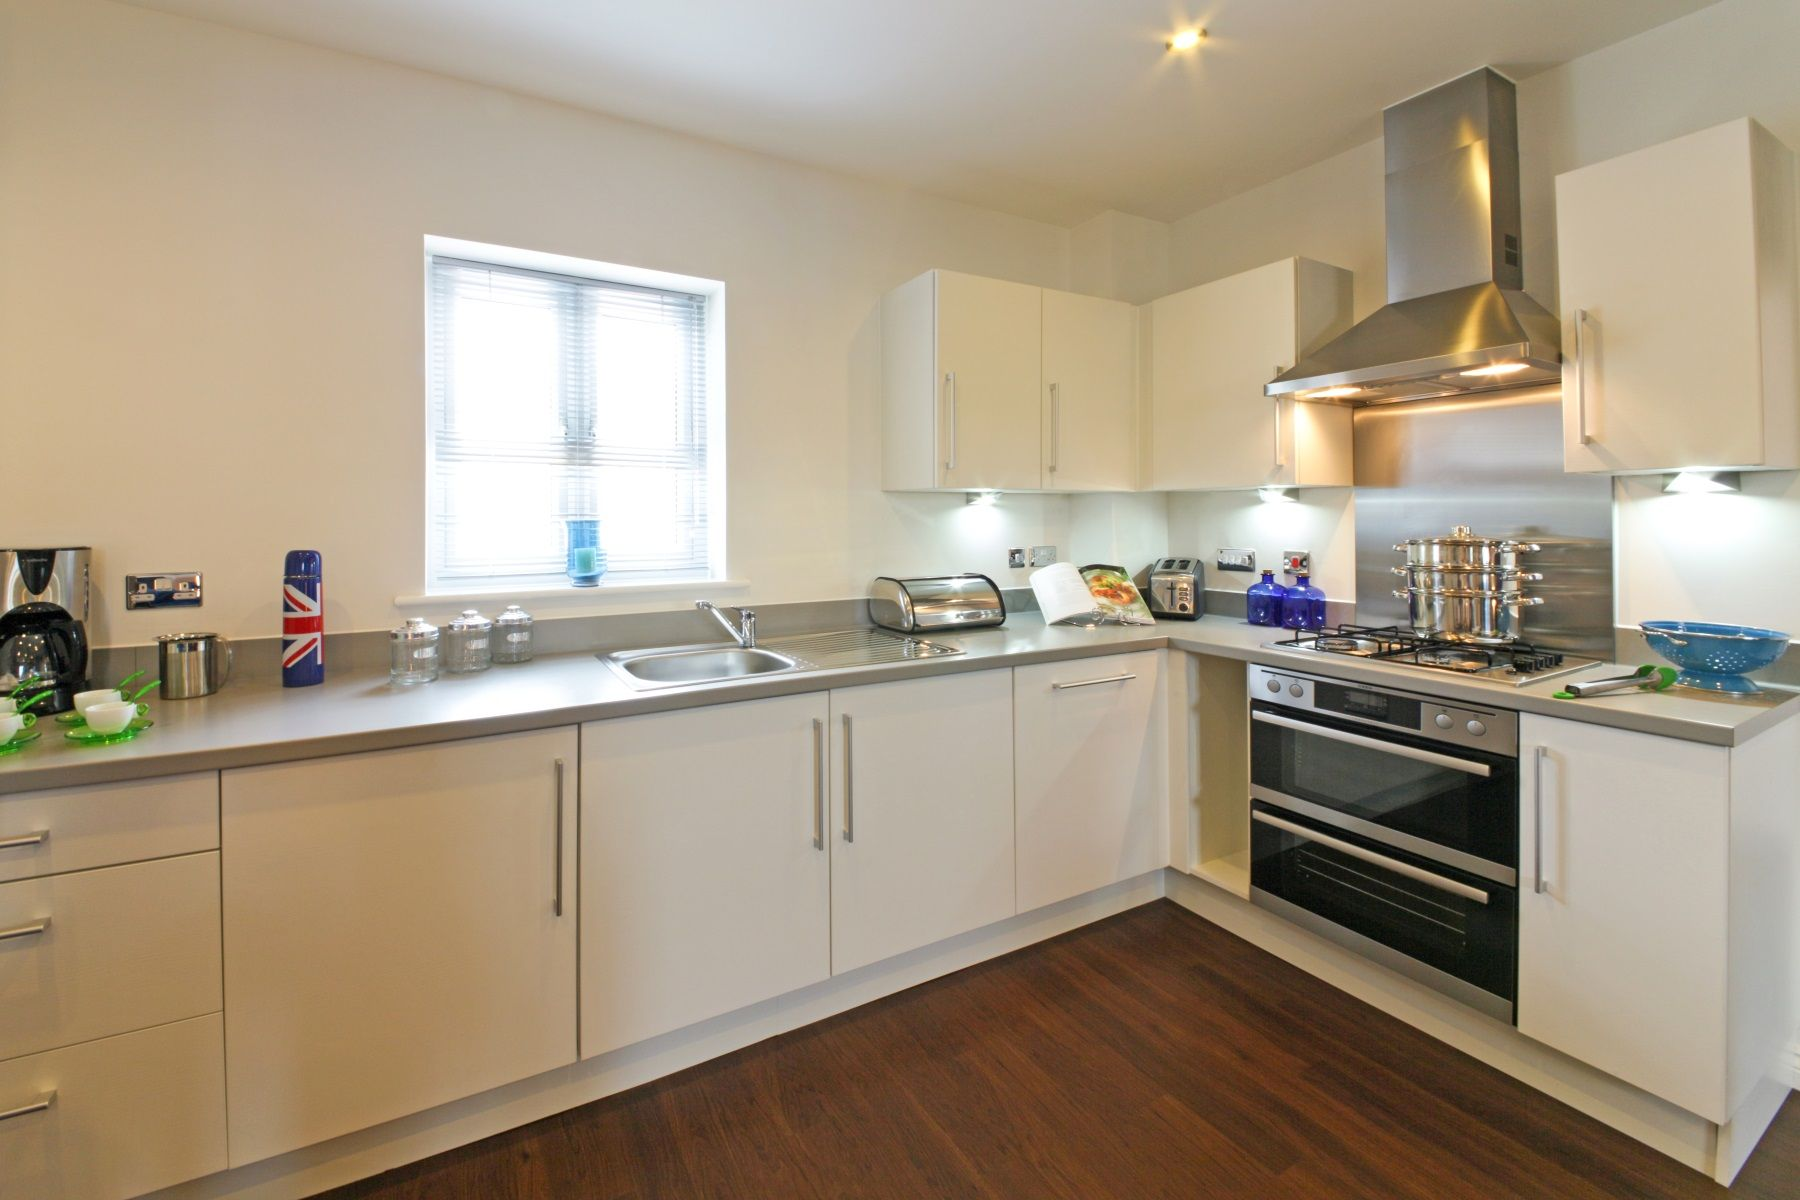 TW Exeter - Cranbrook - Newdale example kitchen